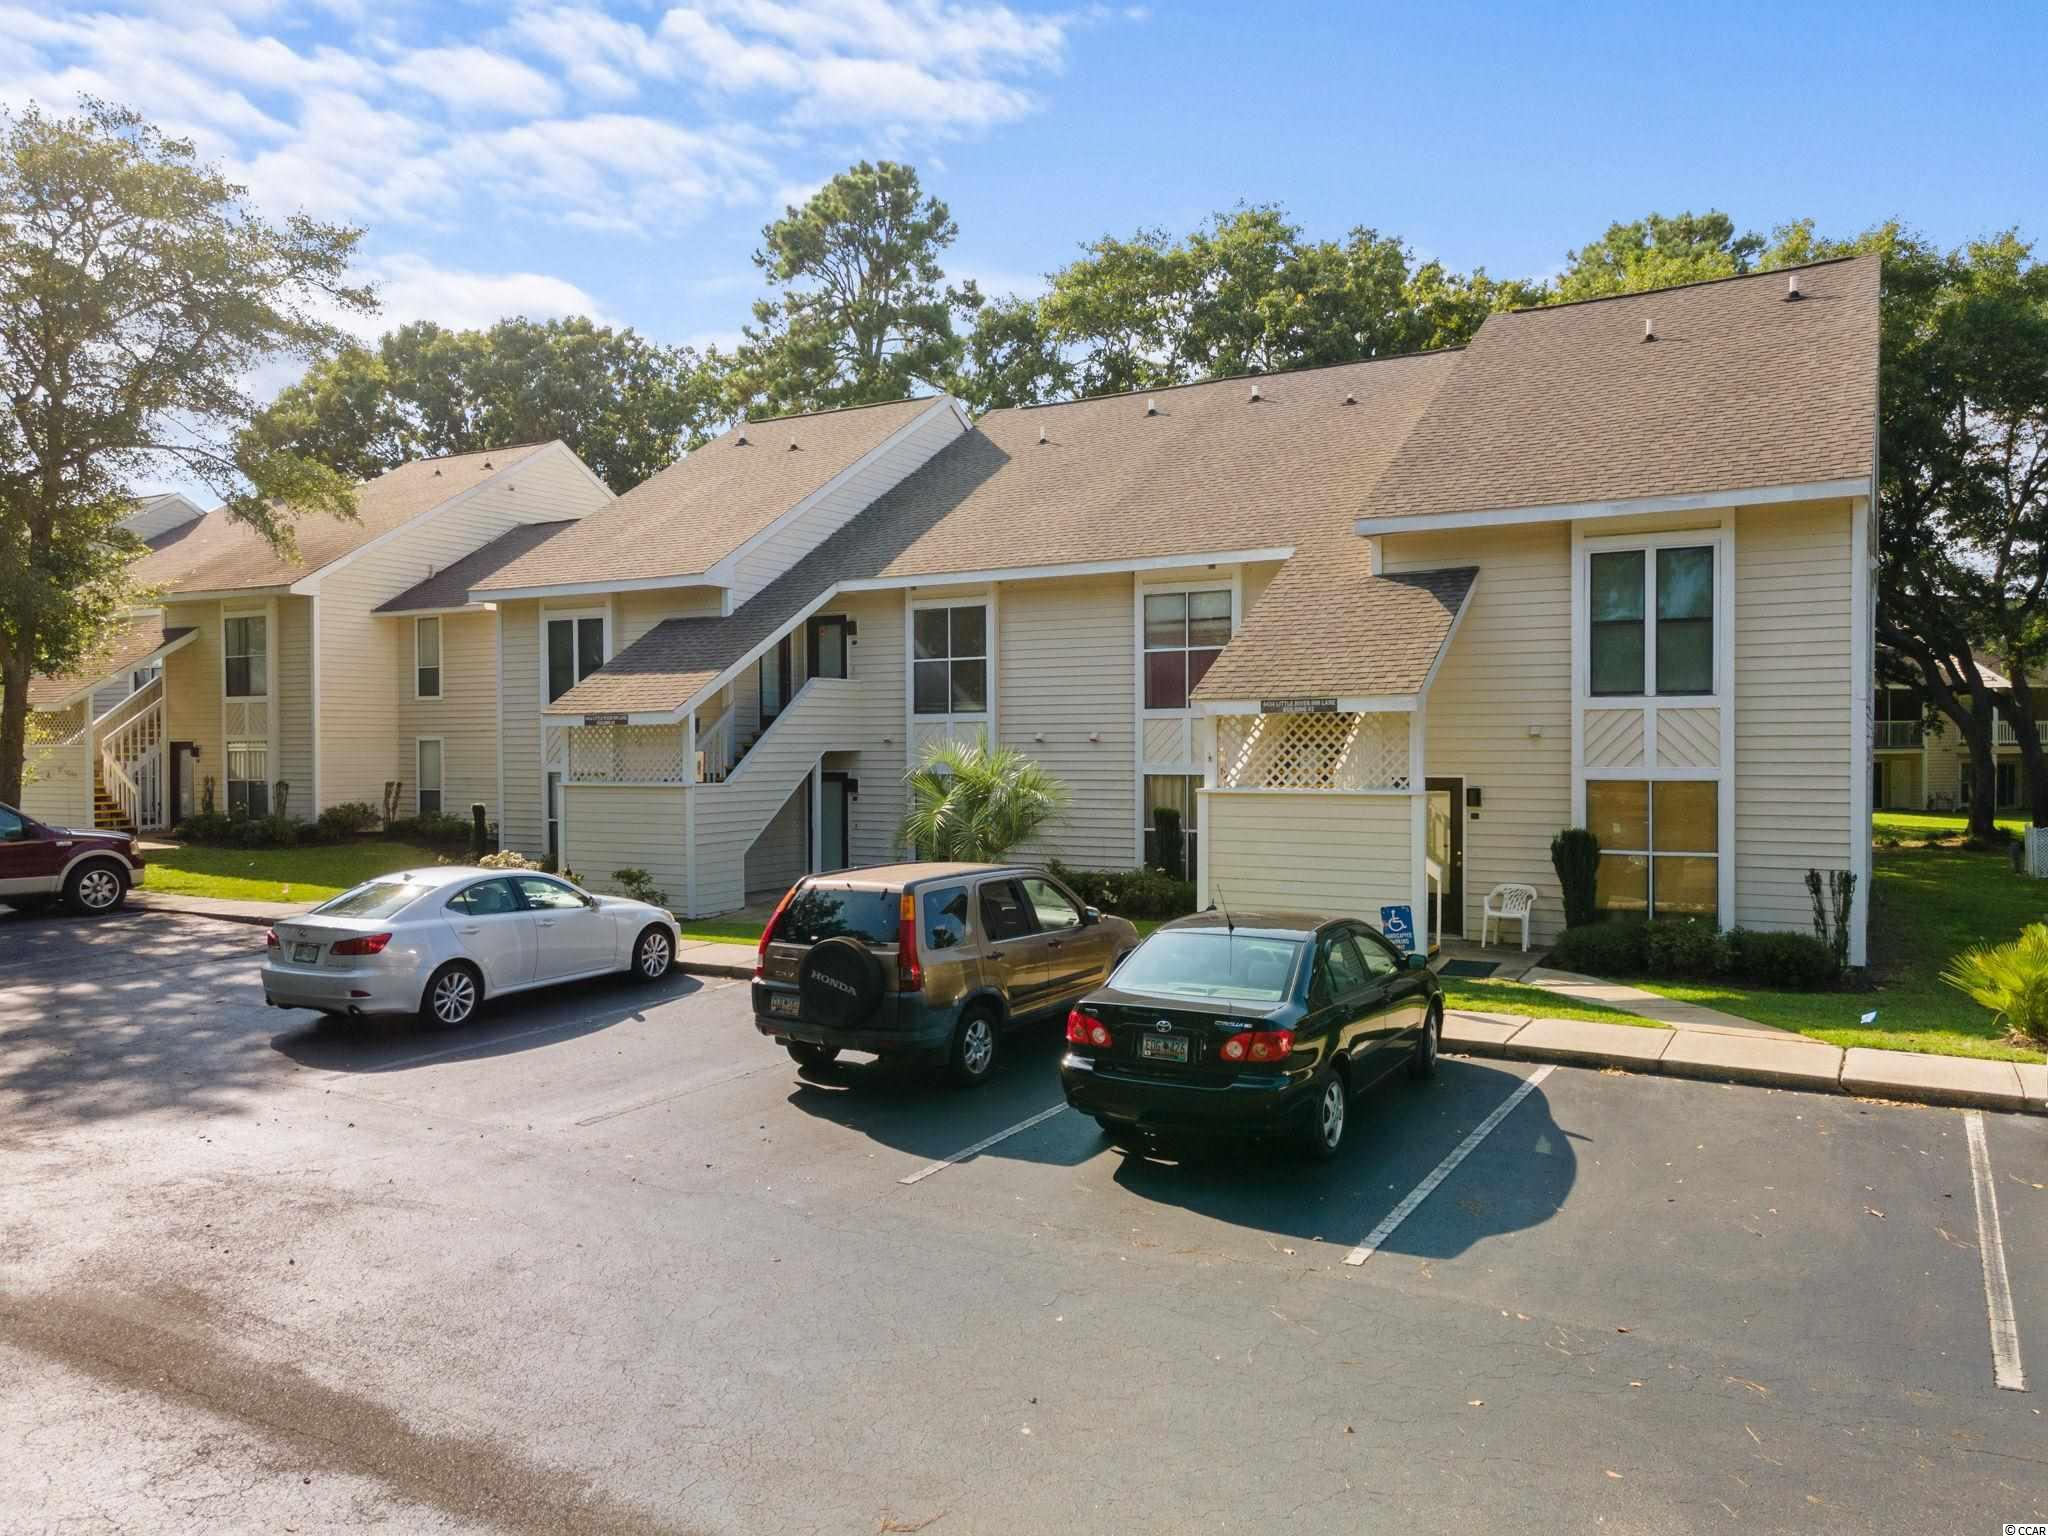 No steps to climb!! Check out this well appointed, first level one bedroom, one bath condo located in the Little River Golf and Health Resort.  Located close to all the village of Little River has to offer, like great waterfront restaurants, entertainment, fishing, the waterway, and just minutes to all of the wonderful North Myrtle Beach oceanfront as well as Hwy 31 and the new NMB Sports Complex.   Currently used as an annual rental, this unit makes a great income producing property with the low HOA fees....or keep this as your inexpensive beach getaway! Make your appointment to view this condo today.